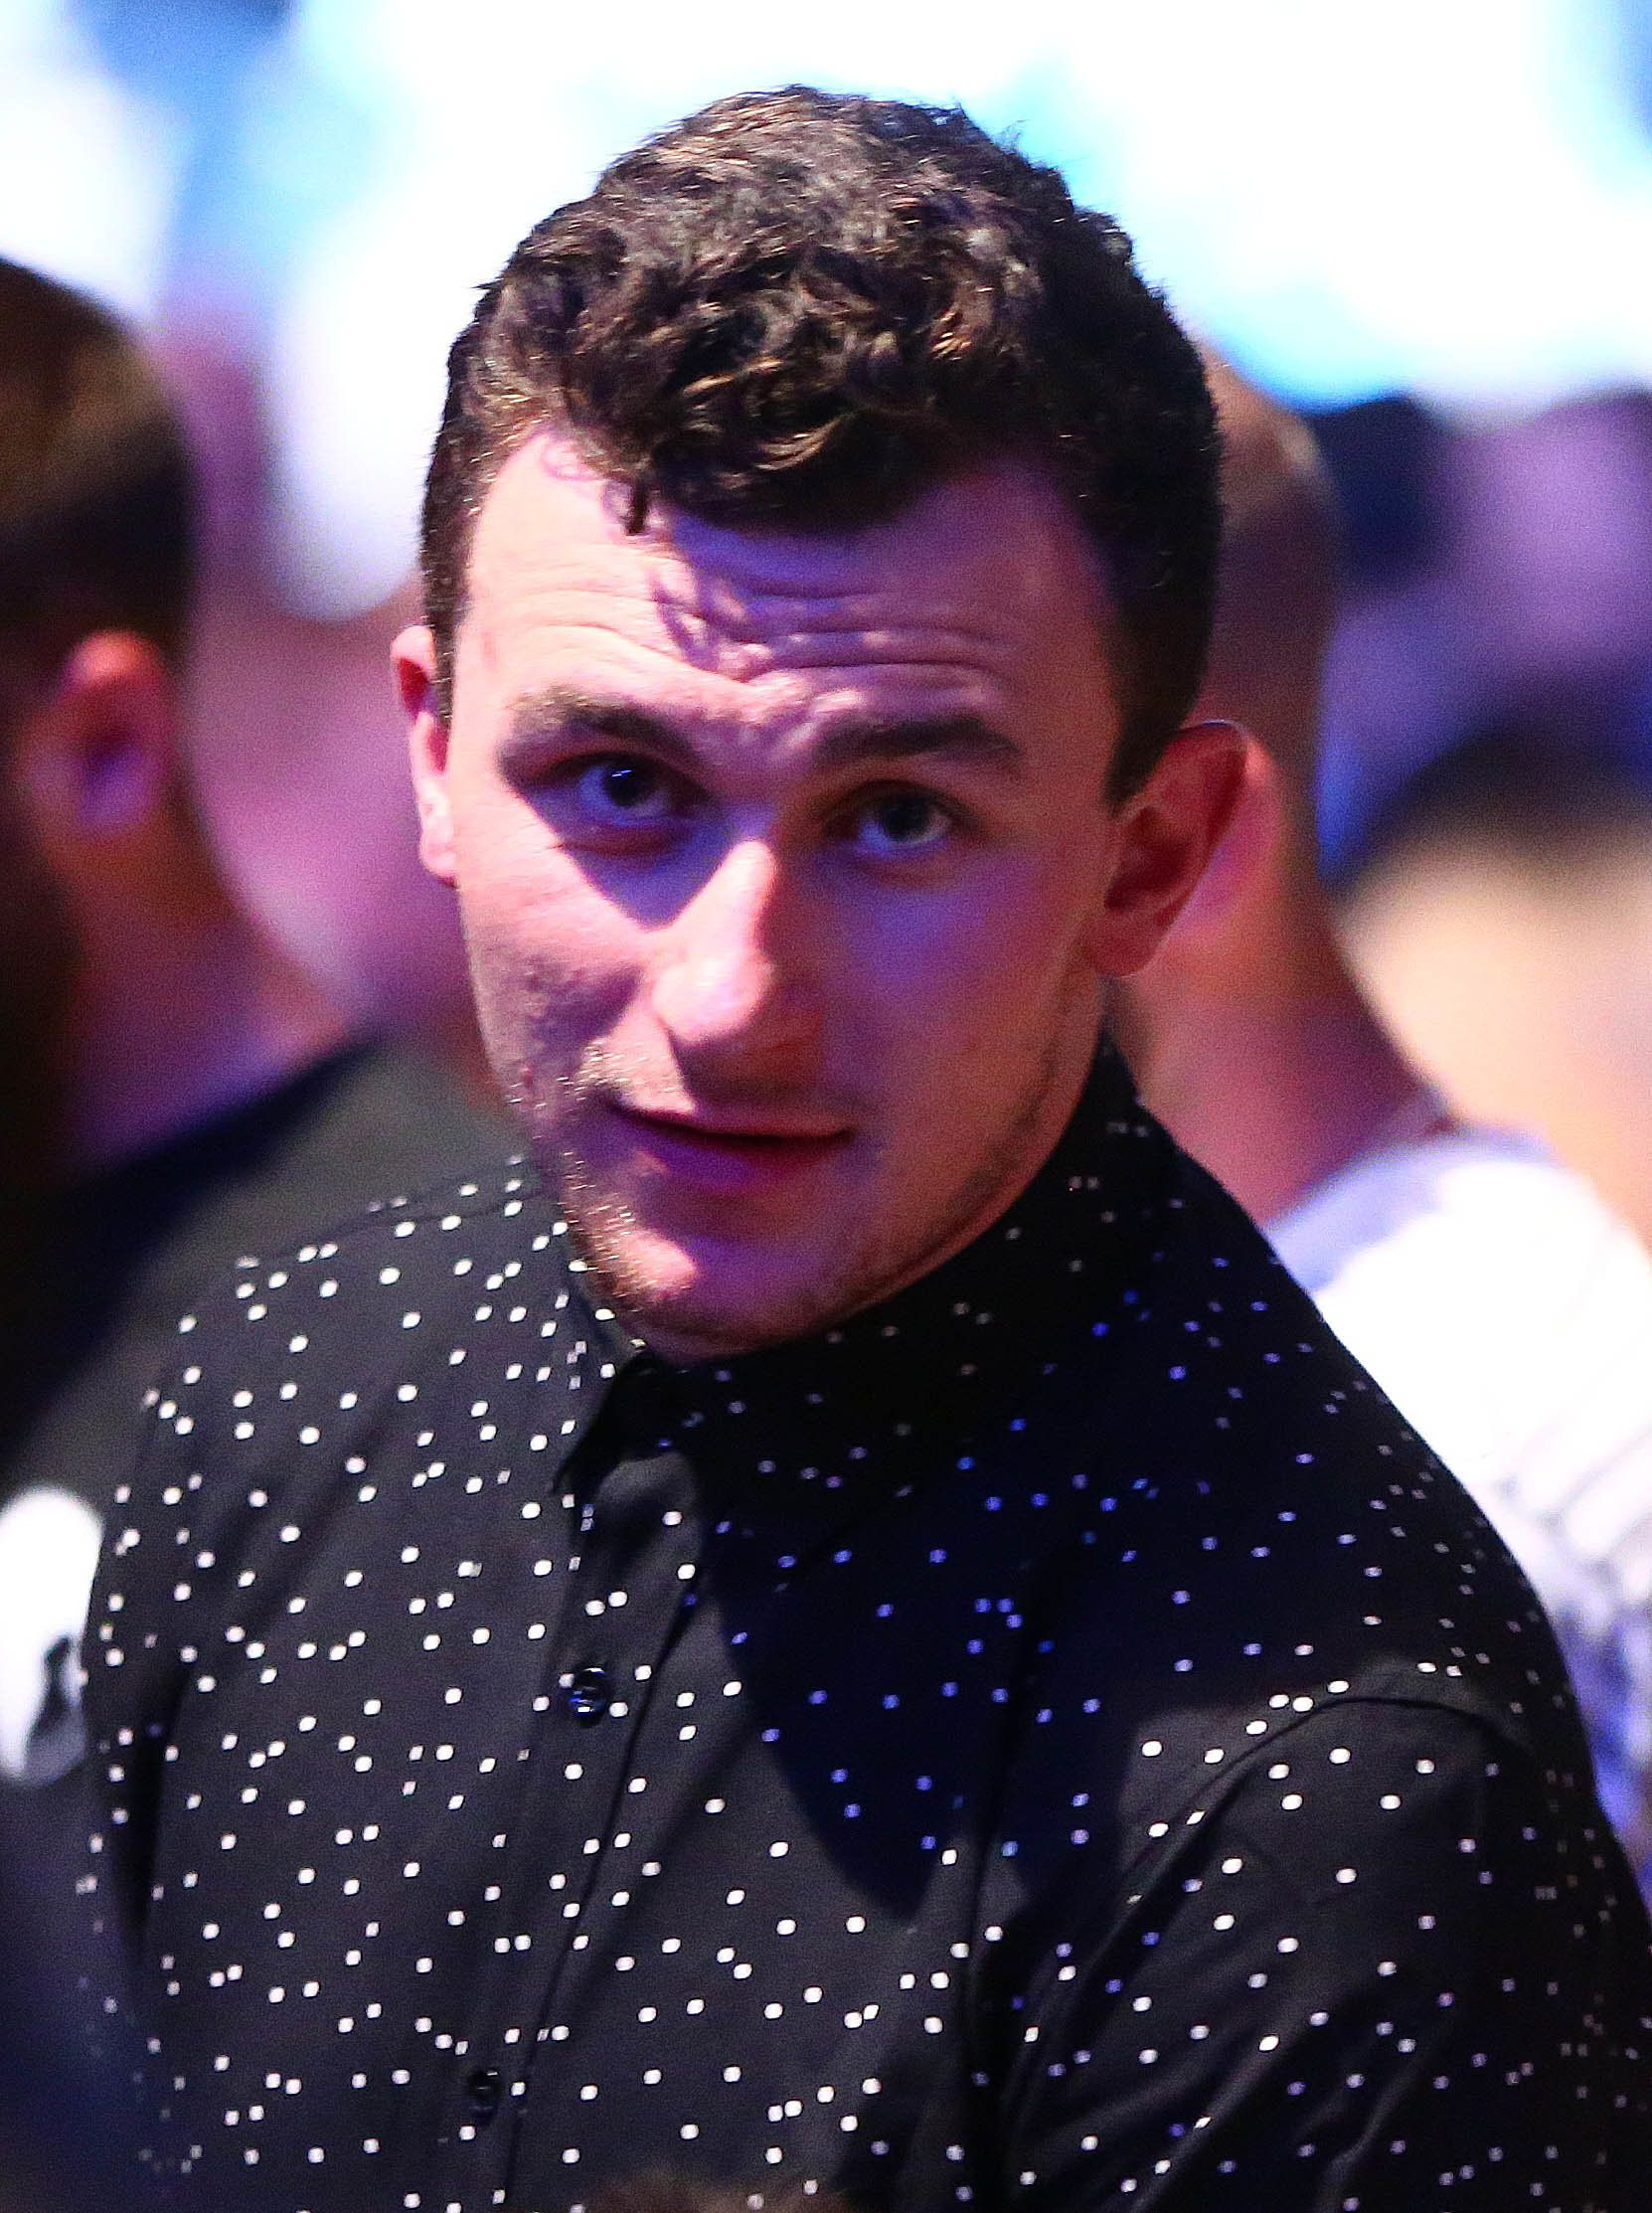 March 5, 2016; Las Vegas, NV, USA; NFL players Johnny Manziel attends the match between Nate Diaz and Conor McGregor during UFC 196 at MGM Grand Garden Arena. Mandatory Credit: Mark J. Rebilas-USA TODAY Sports